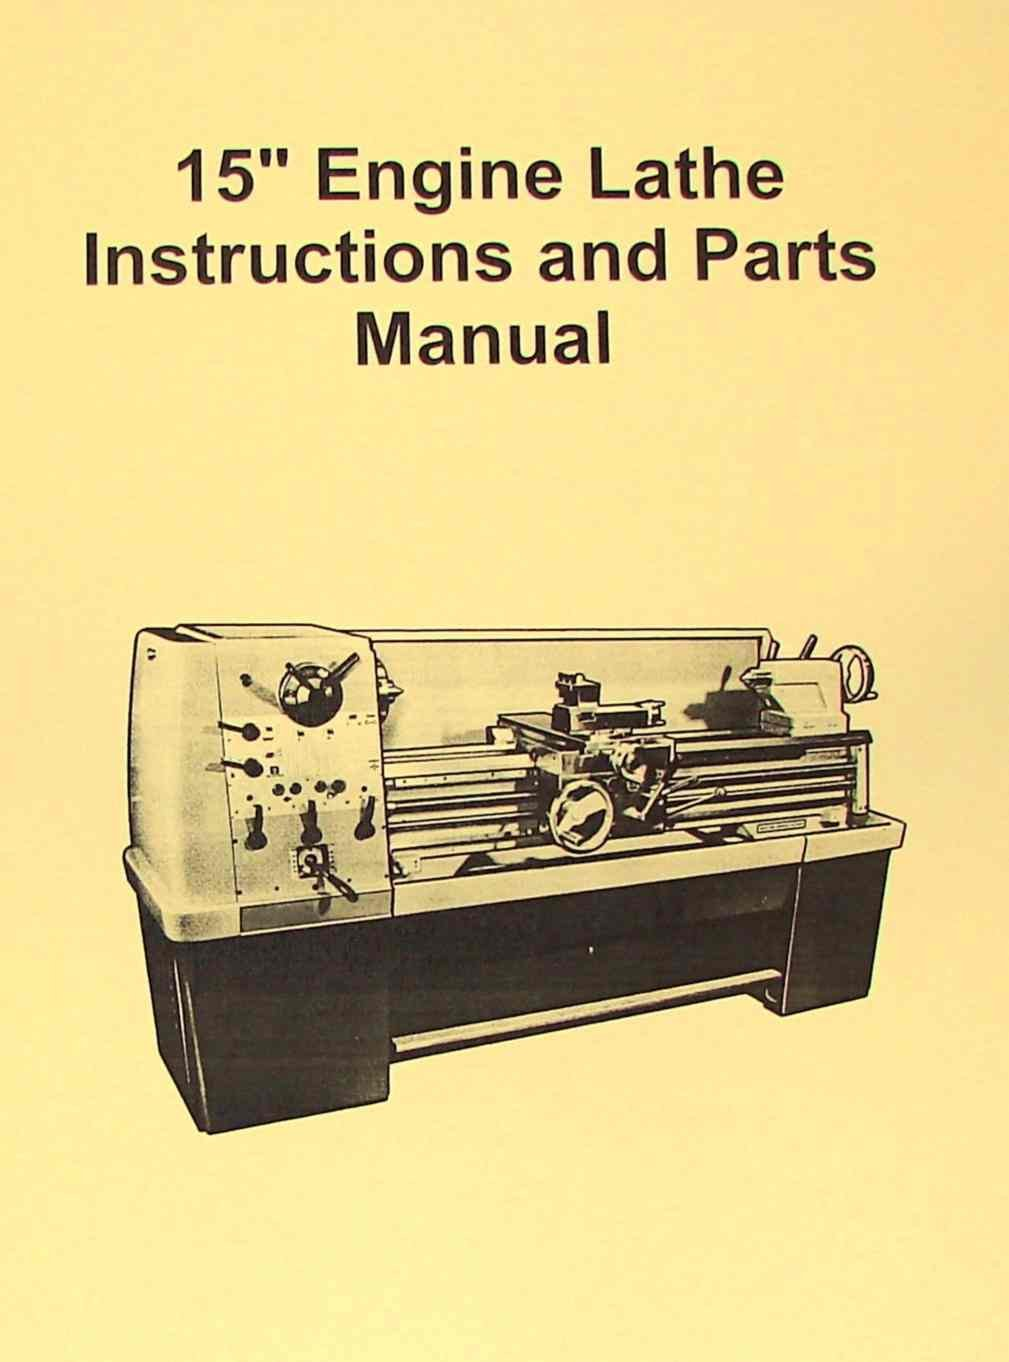 Lathe Wiring Schematic Library Kingston Jet Asian 1550d 15 Metal Operators Parts Manual